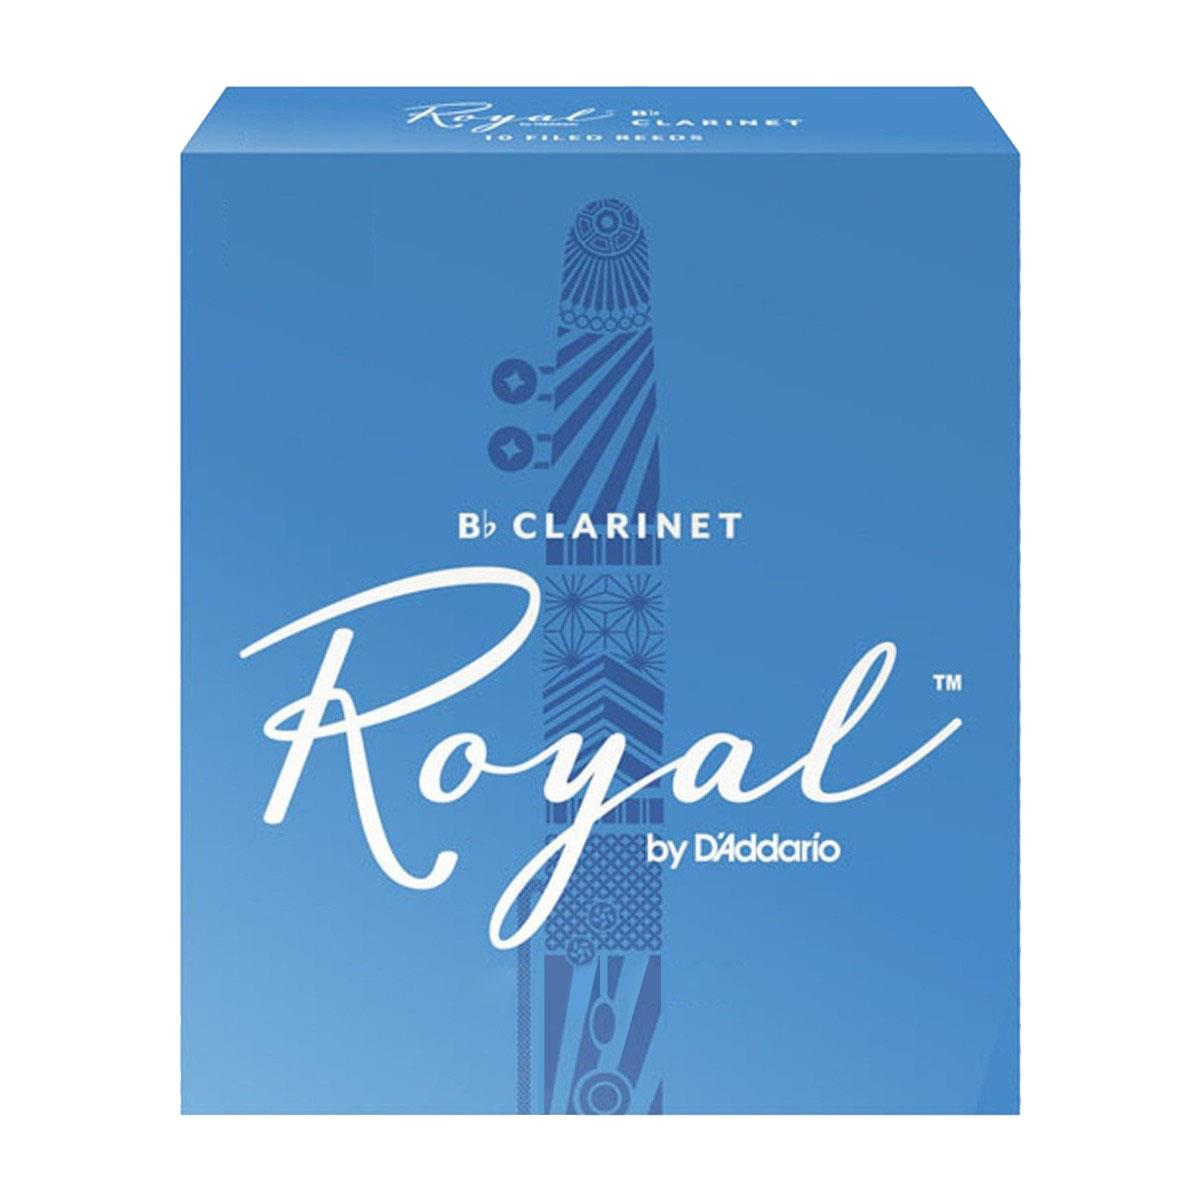 Image of D'Addario Woodwind Royal RCB0315 Bb Clarinet Reeds Strength 1.5 3-pack 0046716575913